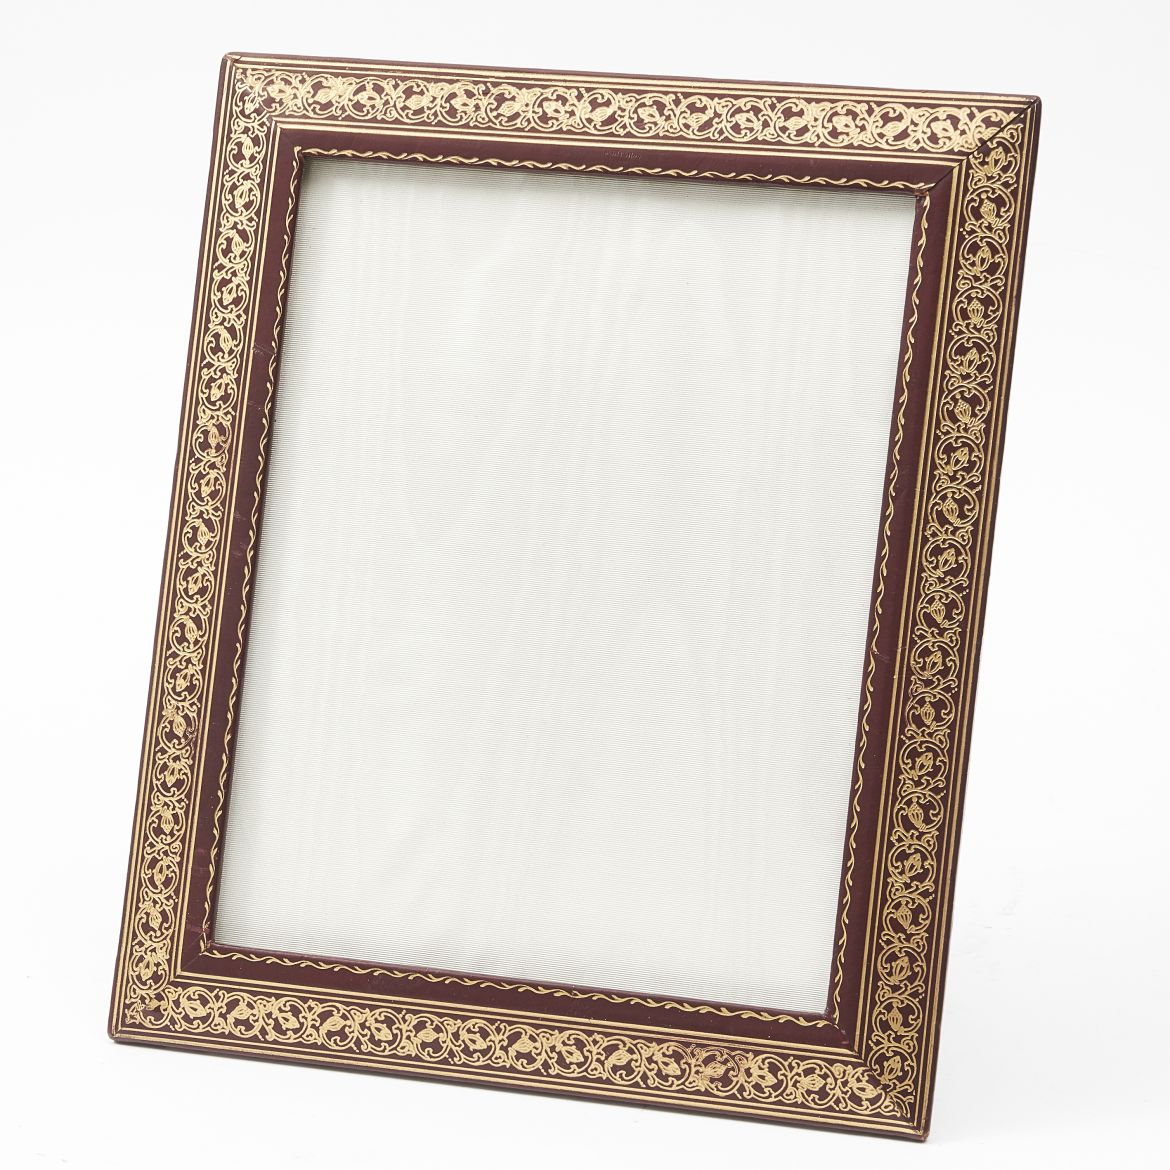 Edwardian Tooled Leather Frame